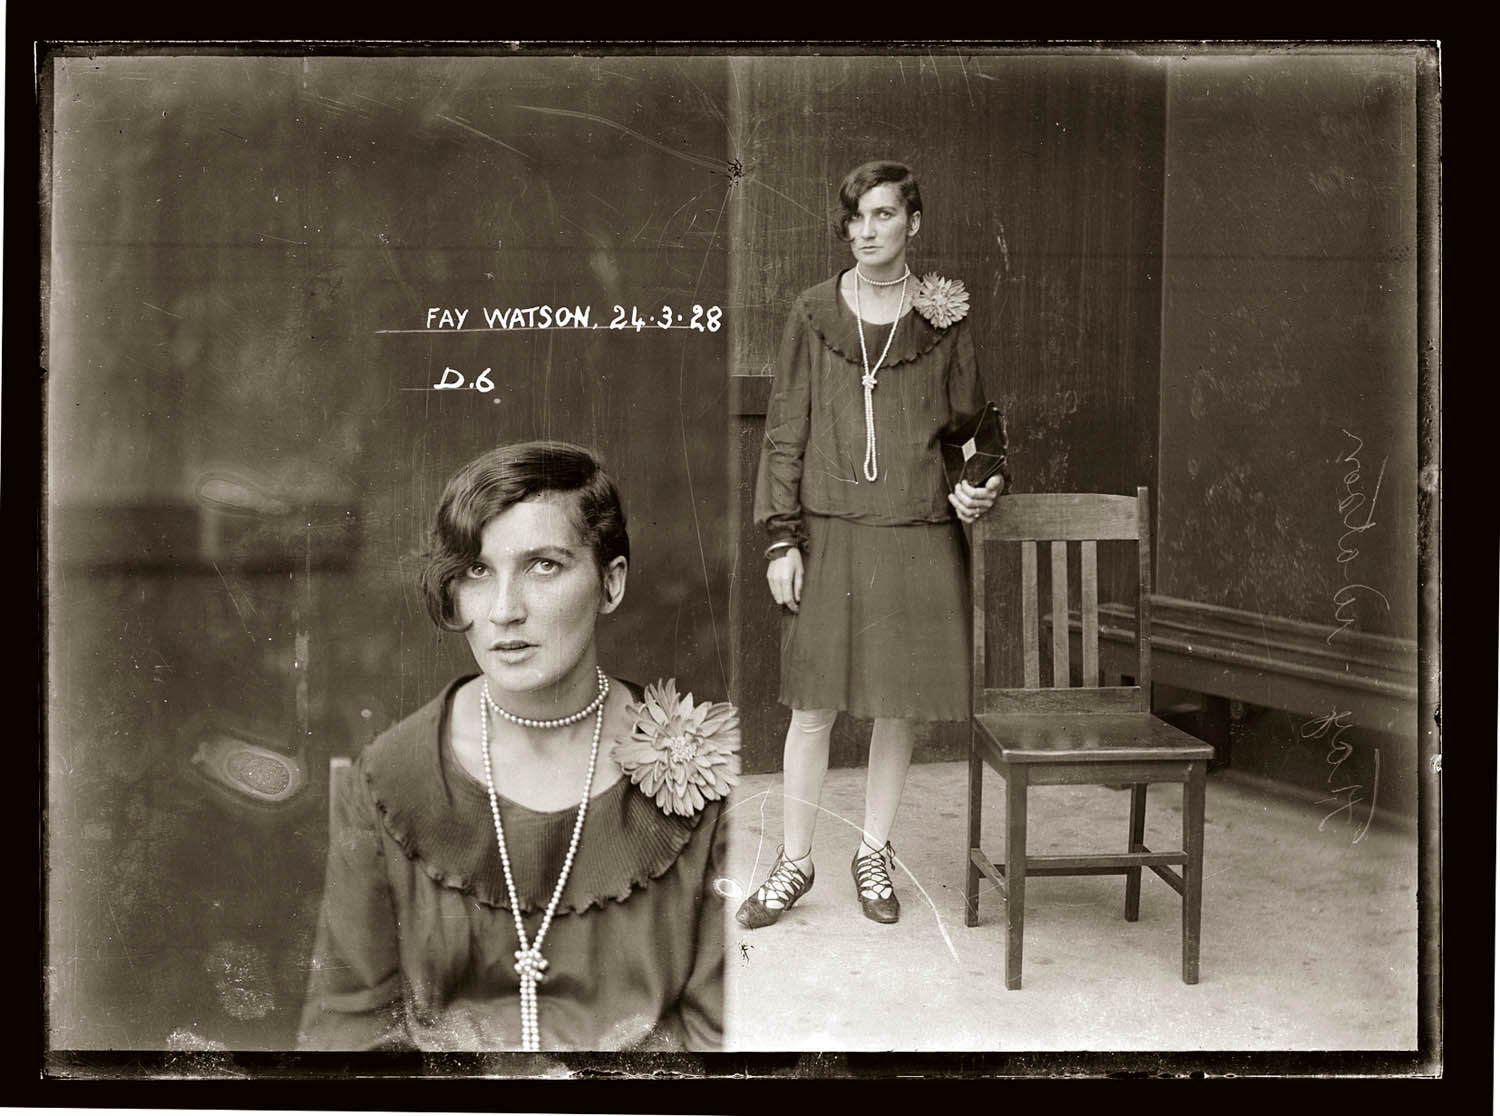 Drug Bureau mug shot of Fay Watson, 24 March 1928, Central Police Station